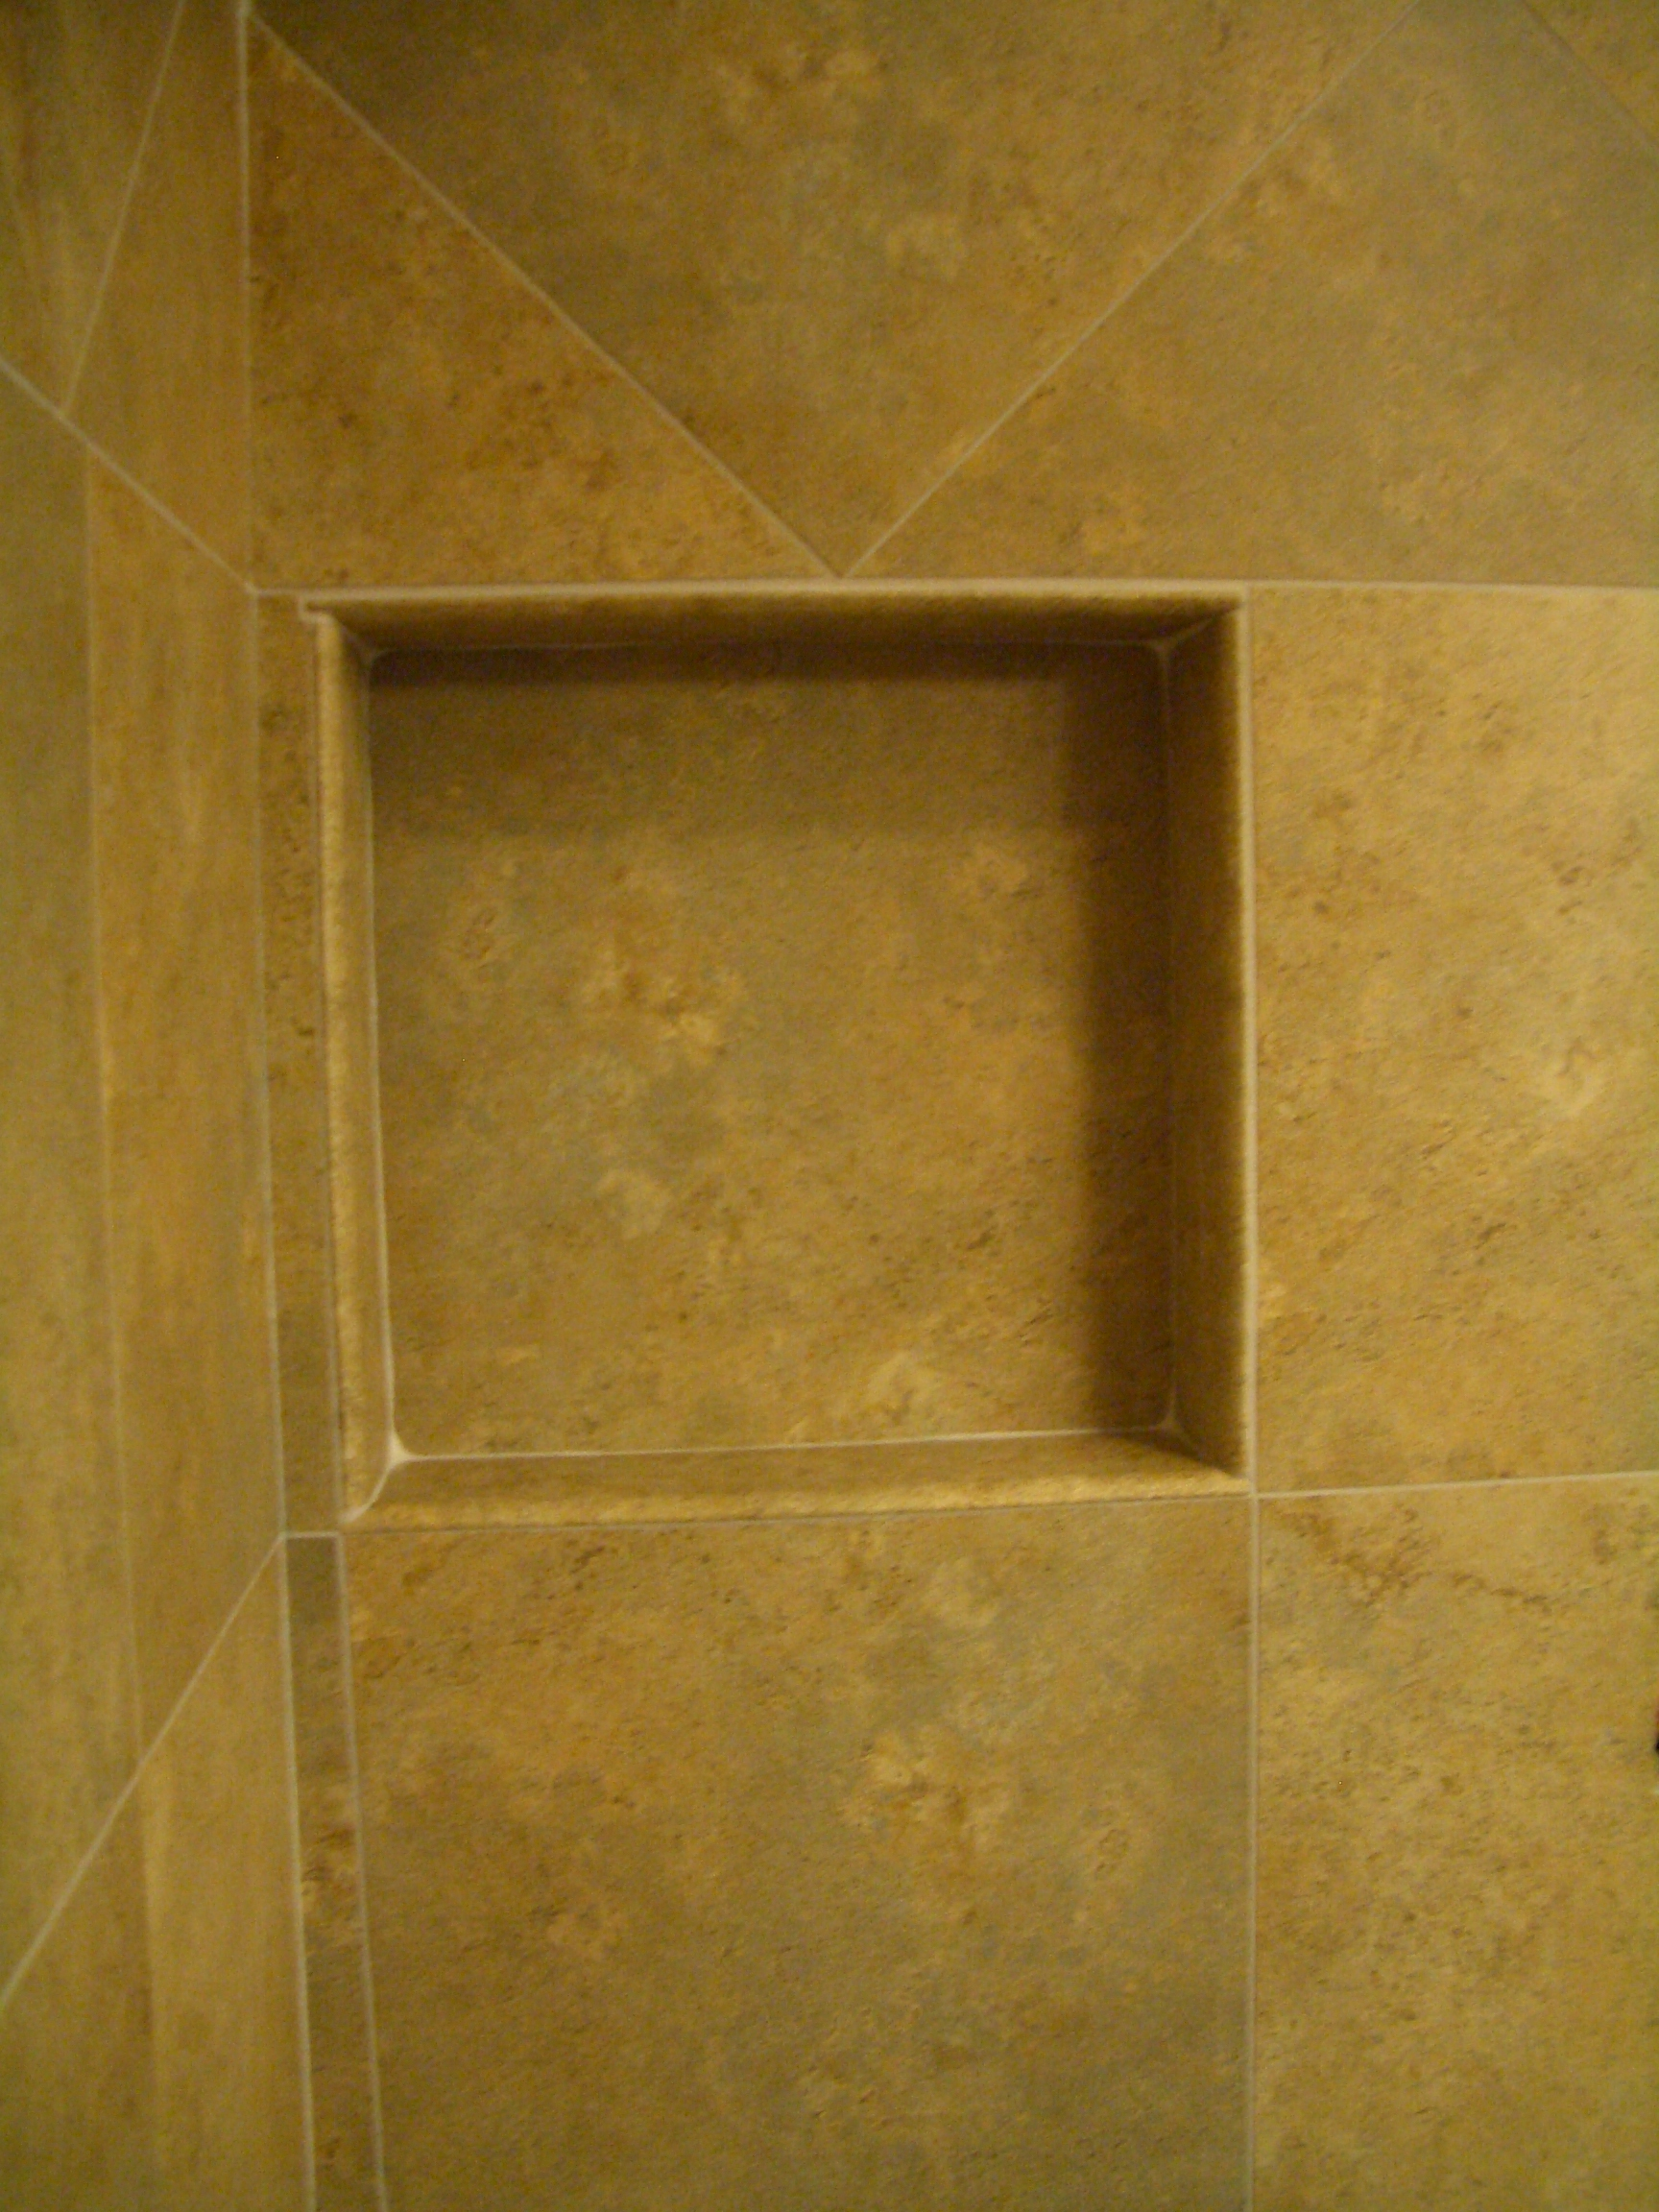 How to build a niche for your shower part 1 How to tile a shower